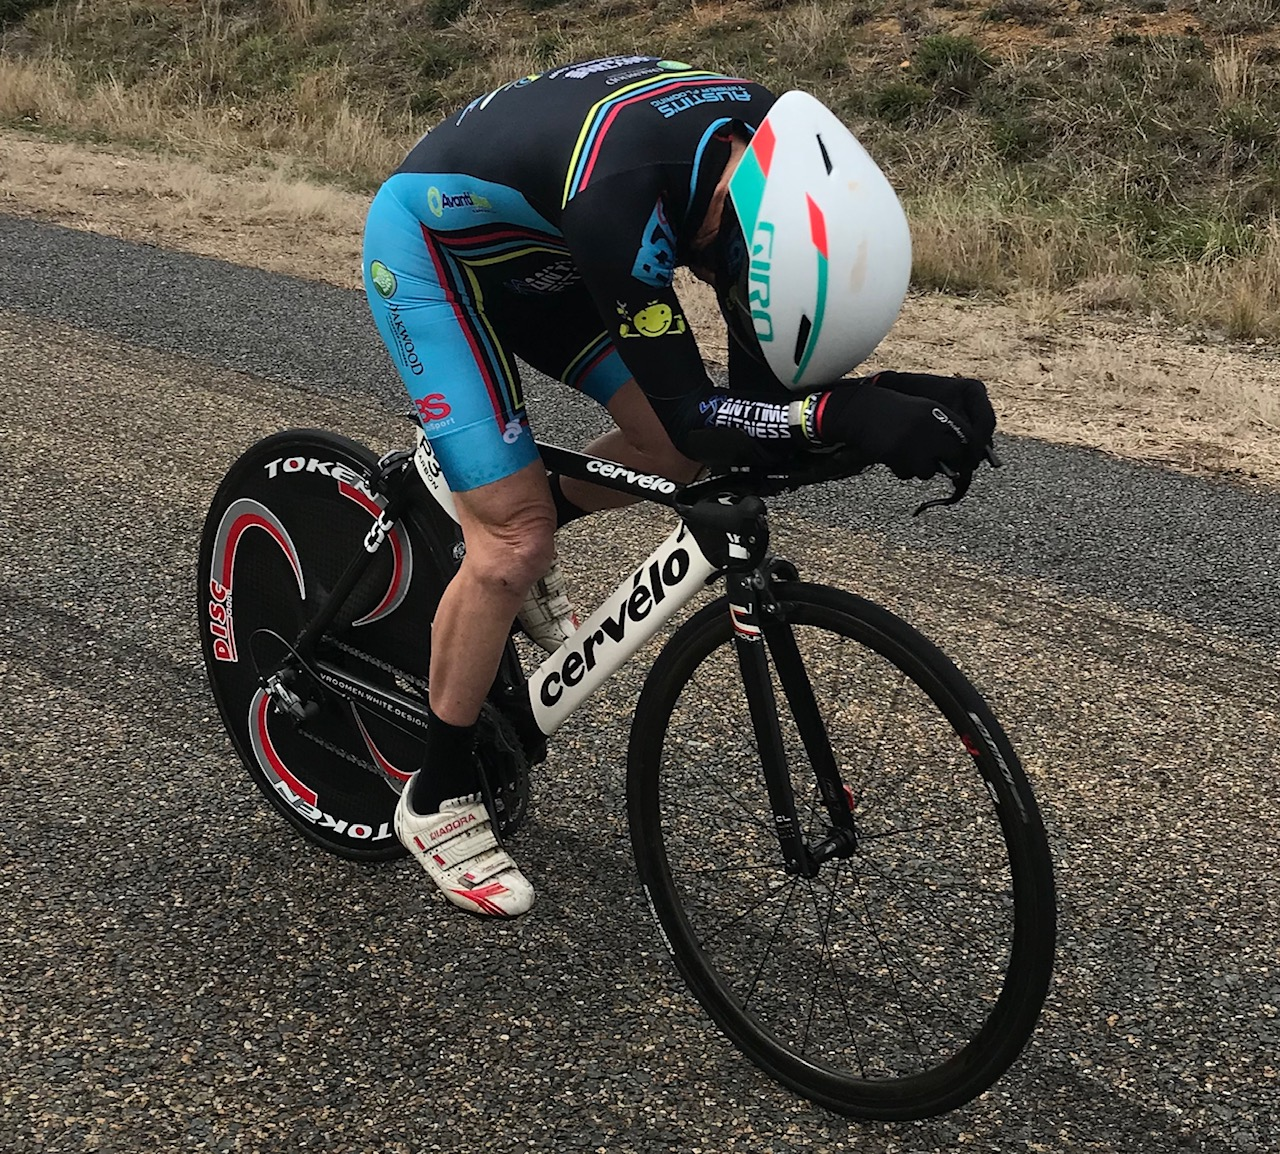 NSW Masters ITT Championships @ Gunning @ 7 Sept - Mike Lawson (Masters M7) on his way to 4th place (missing out on the podium by just 0.5secs)